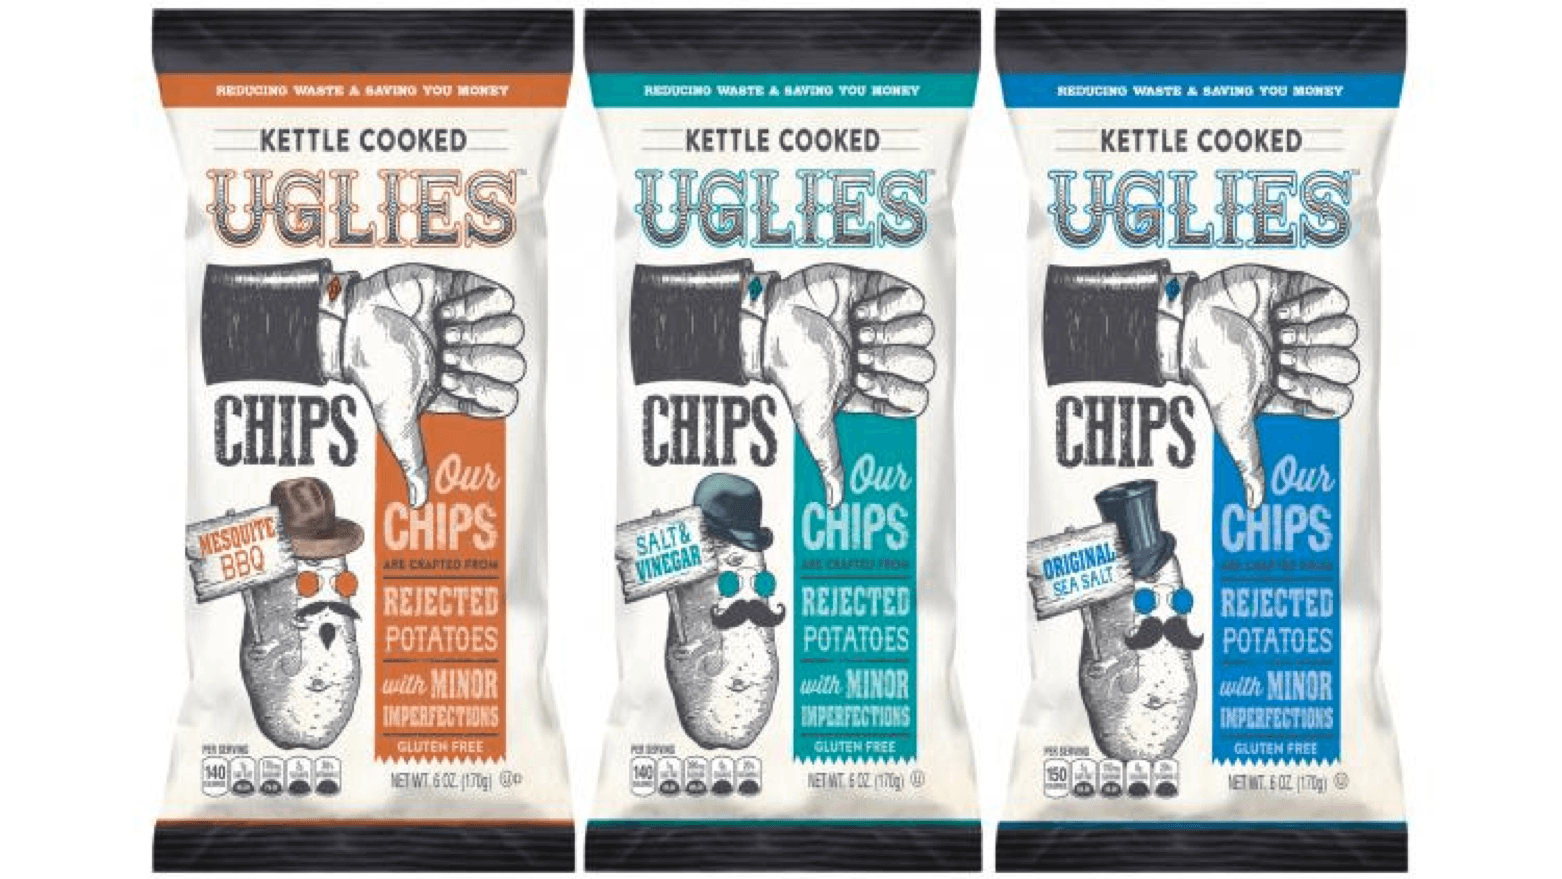 Pennsylvania snack purveyor Dieffenbach's Potato Chips created Uglies, kettle-cooked potato chips made from rejected potatoes.